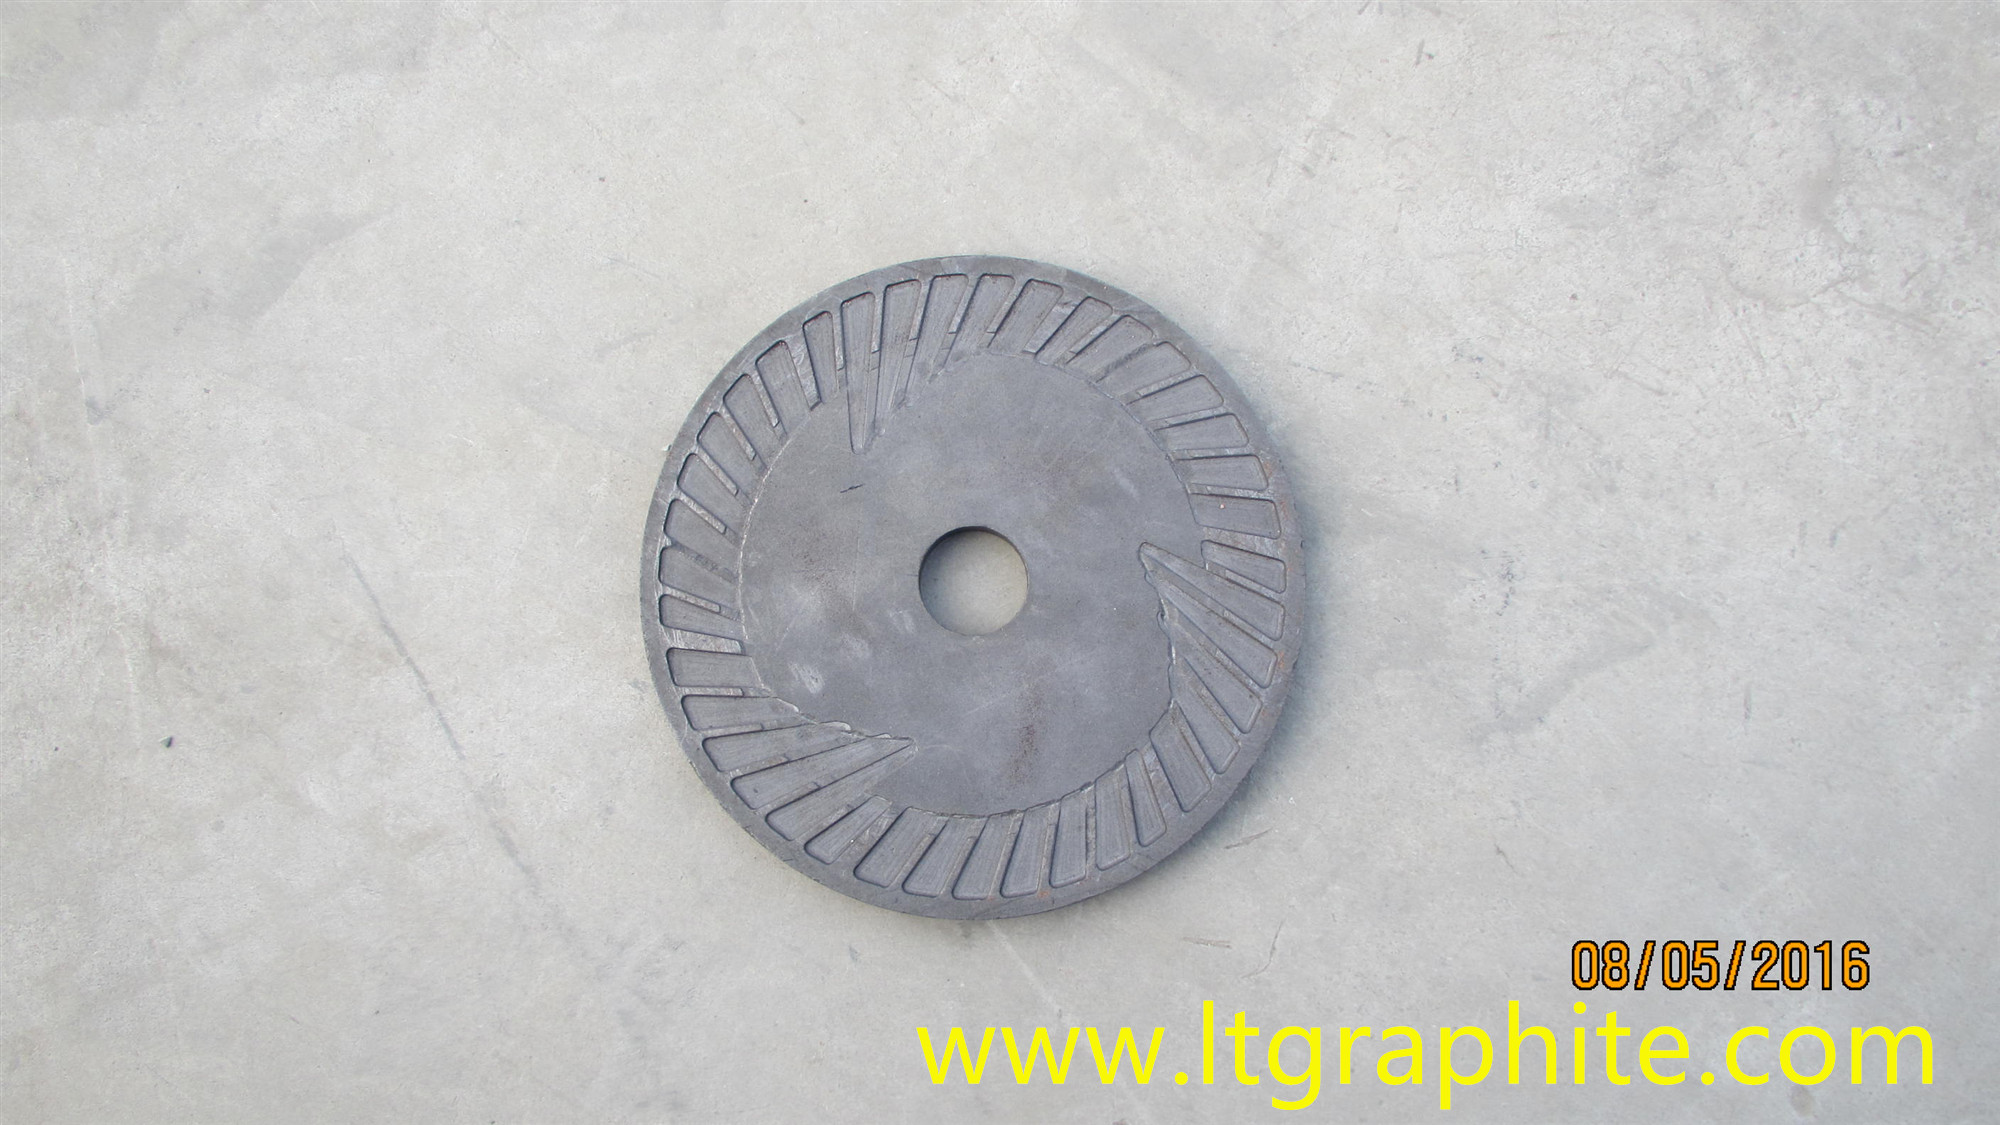 High Purity Graphite Plates for Sintering Diamond Discs Cutting Stones